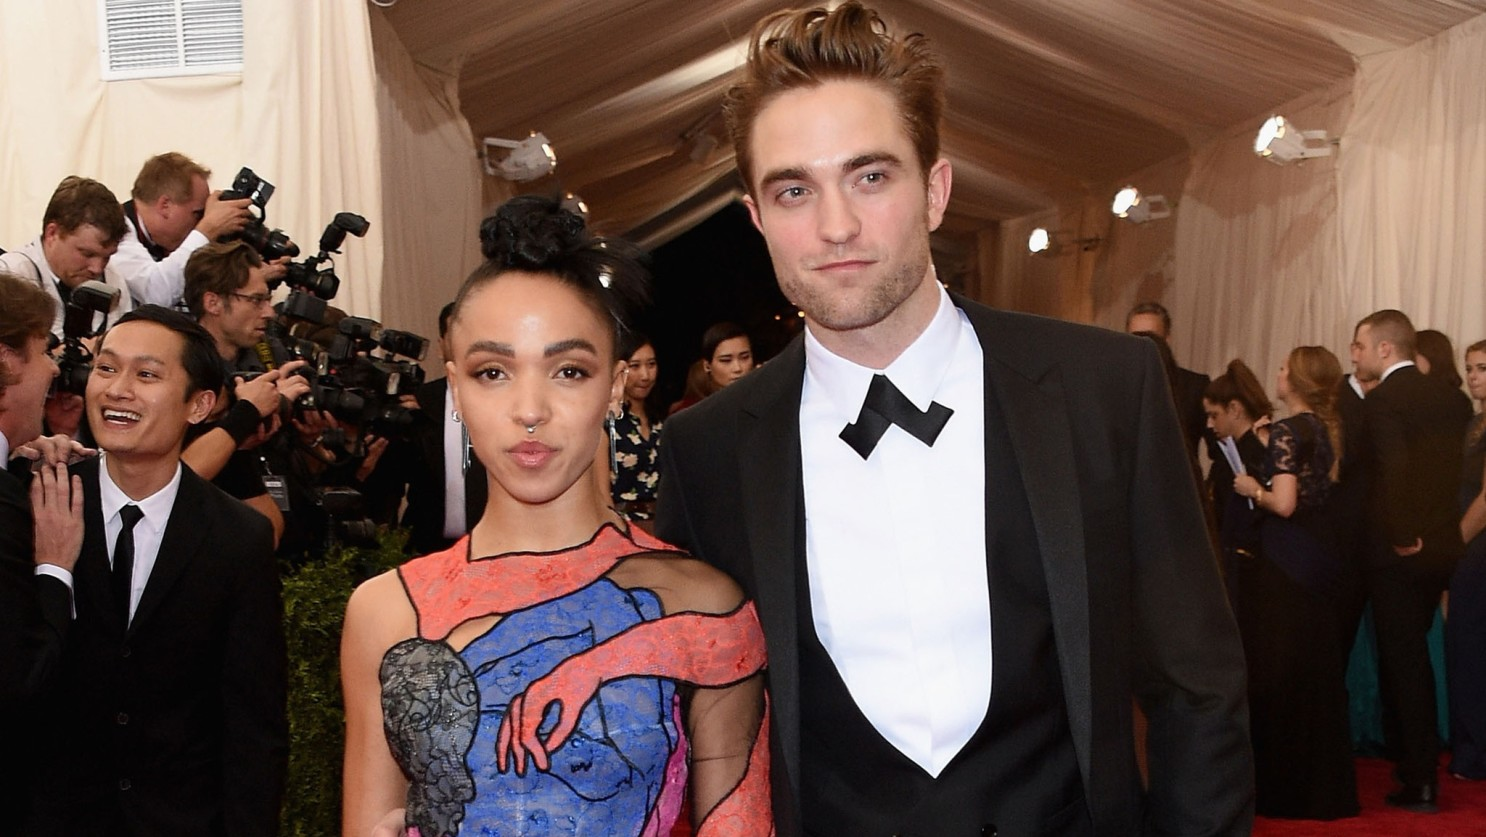 why FKA Twigs hates that Robert Pattinson relationship 'validated' her beauty after being called 'odd-looking'?